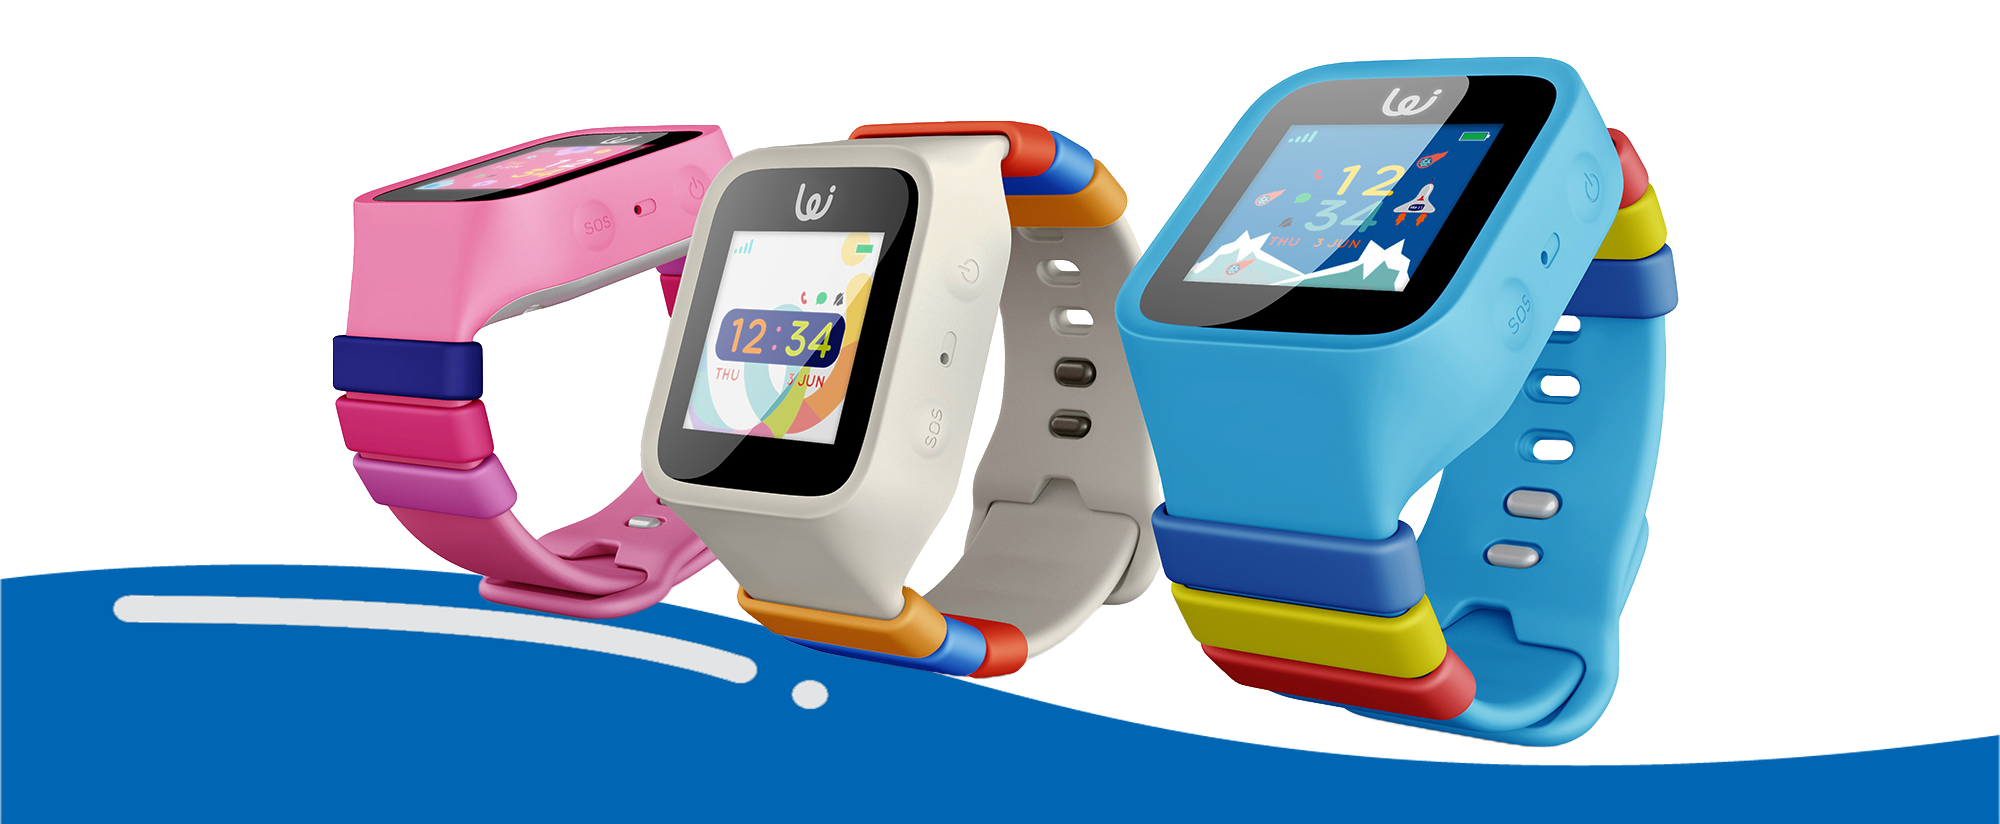 Wizard GPS Watch for Children Pink Blue White